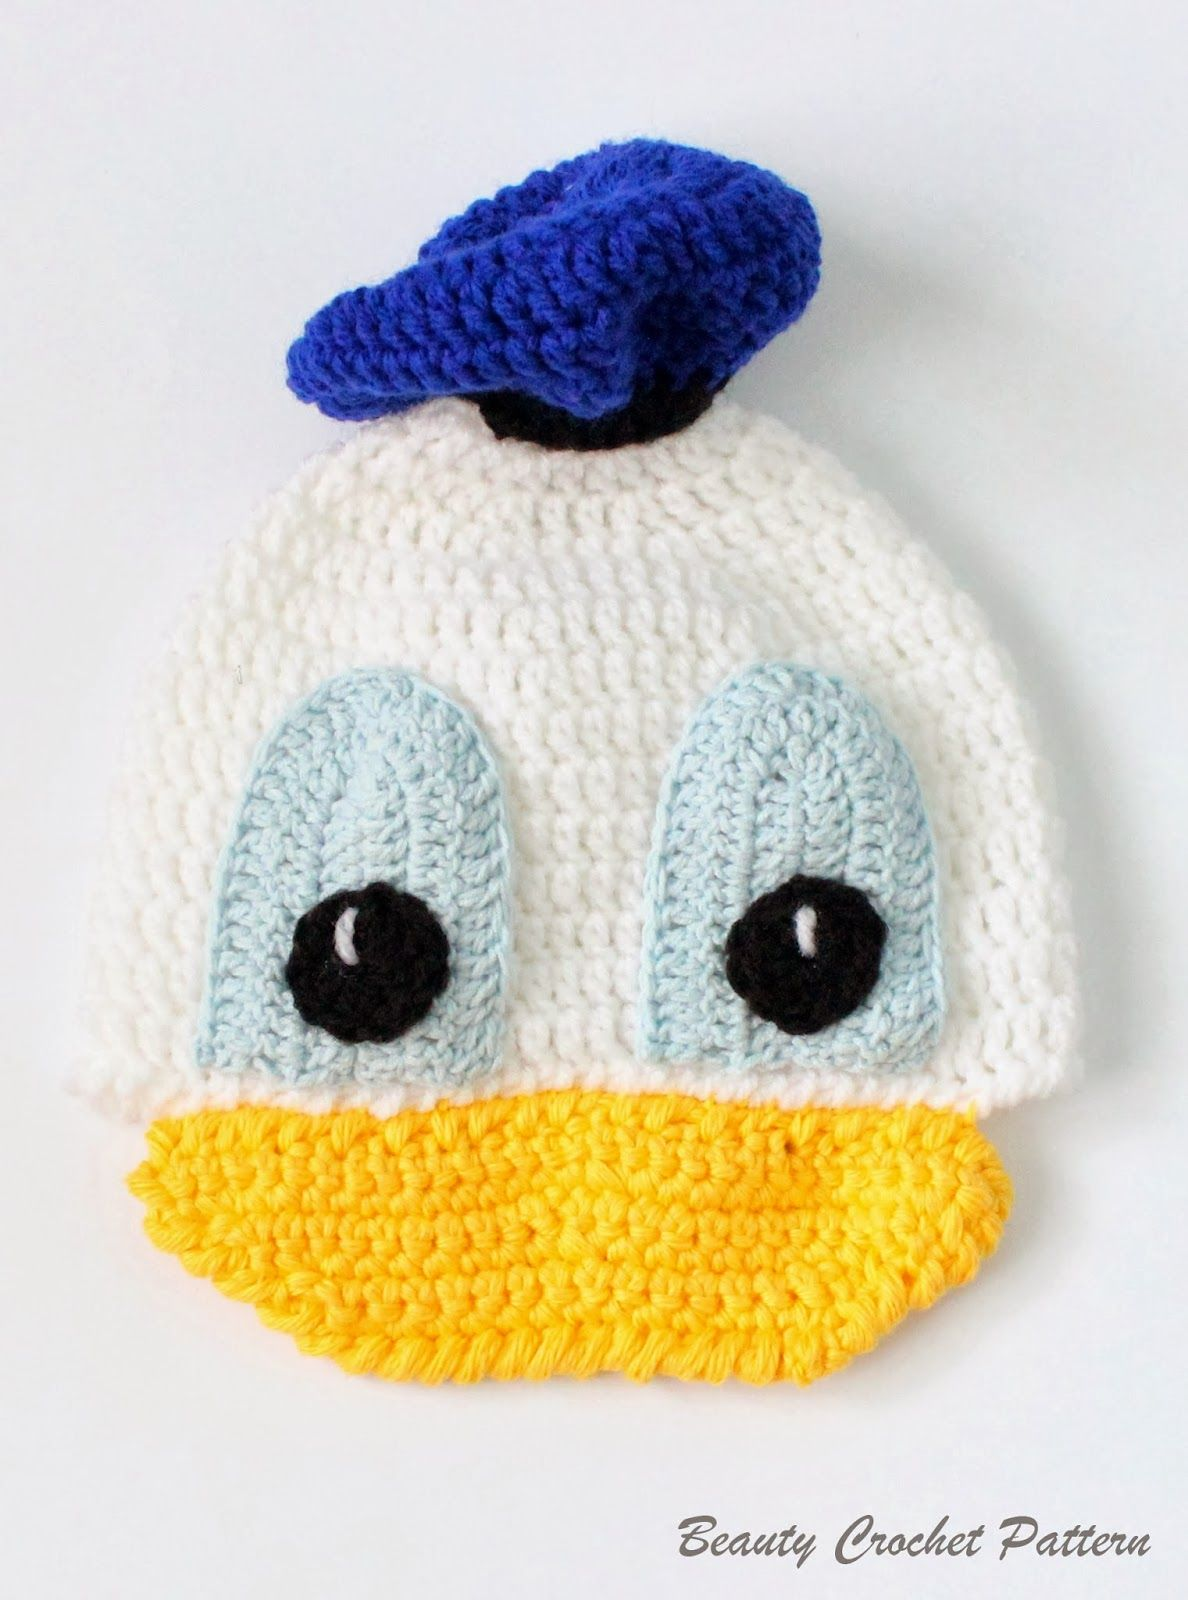 Donald Crochet Hat Pattern | Crochet n knit | Pinterest | Mütze ...